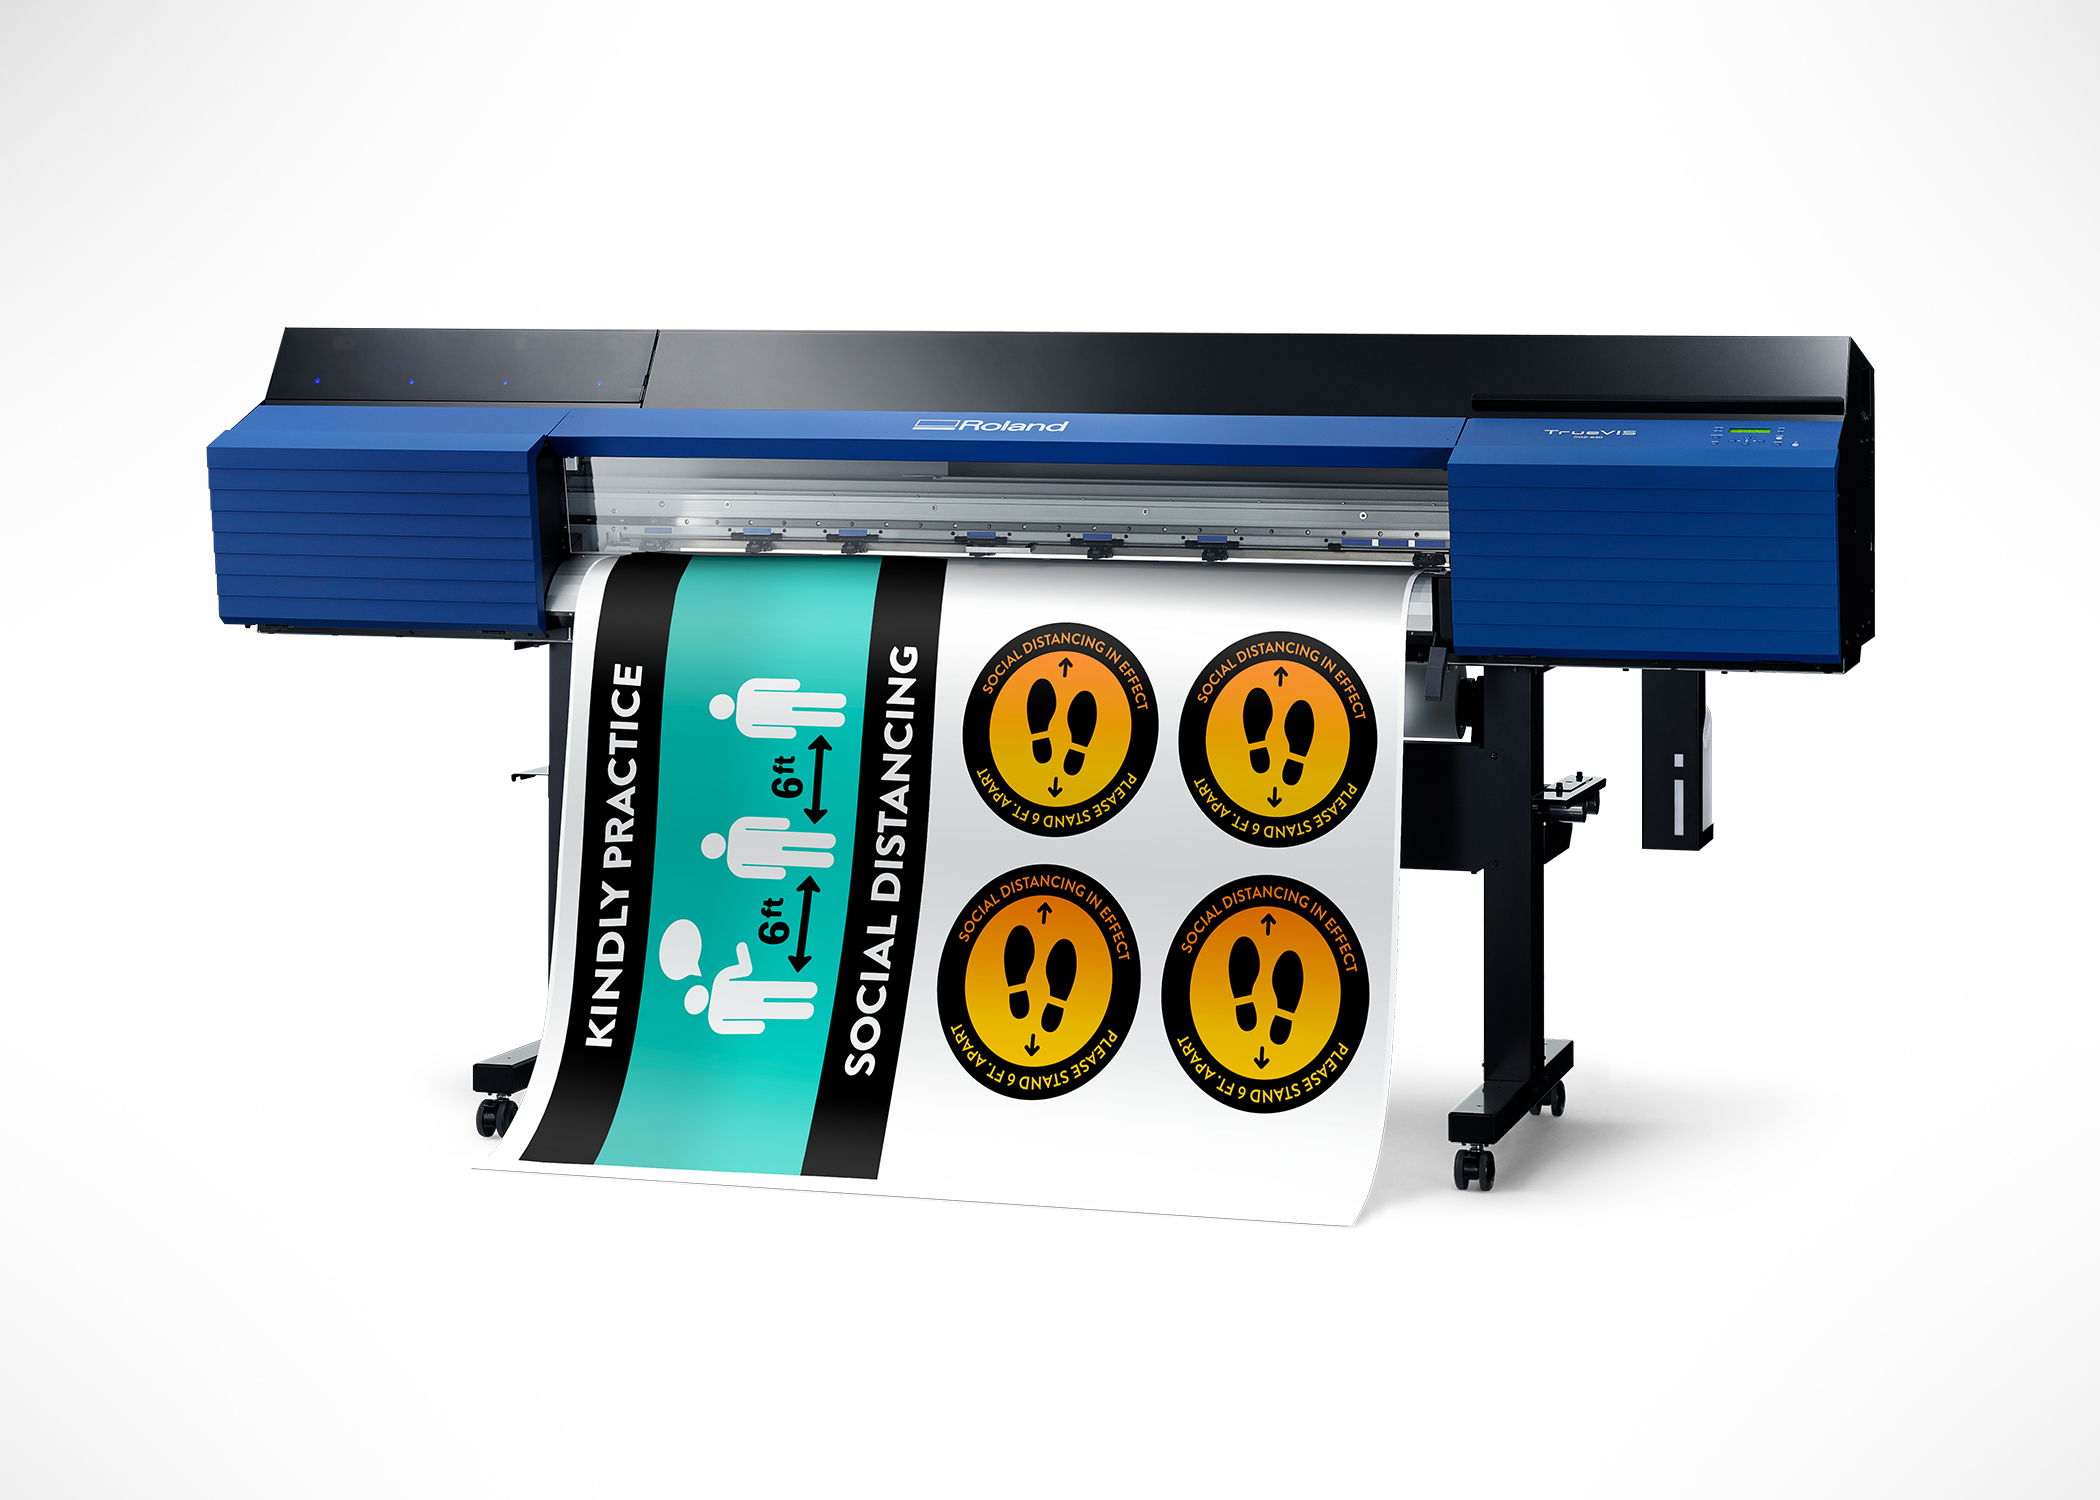 Roland DGA Introduces New Social Distancing Signage Solutions.